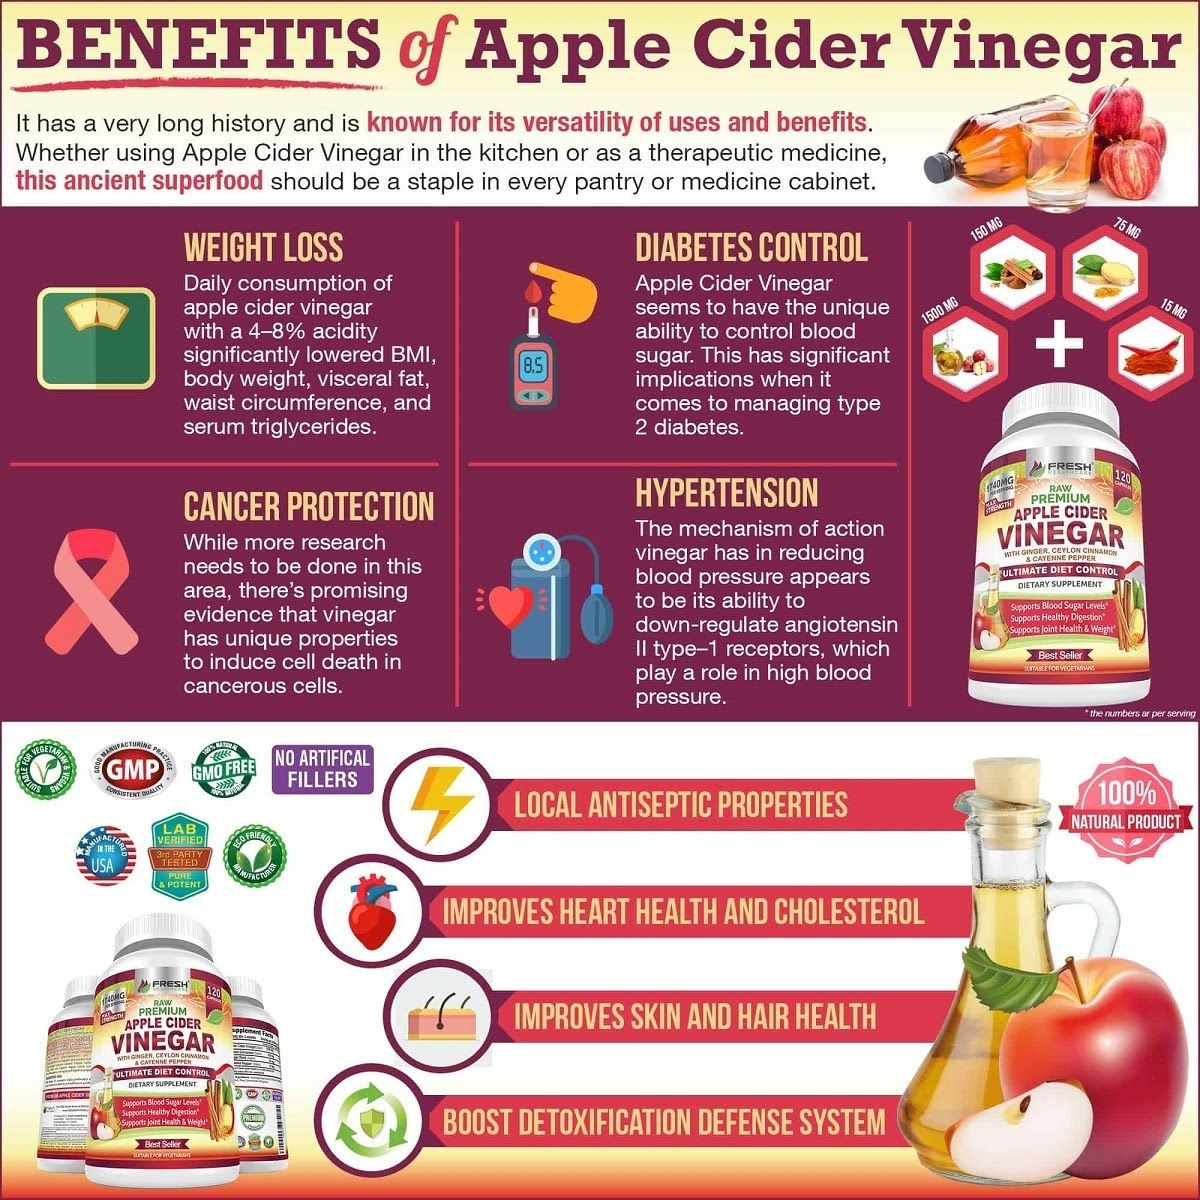 Apple Cider Vinegar: A Versatile and Therapeutic Superfood - Infographic #applecidervinegarbenefits